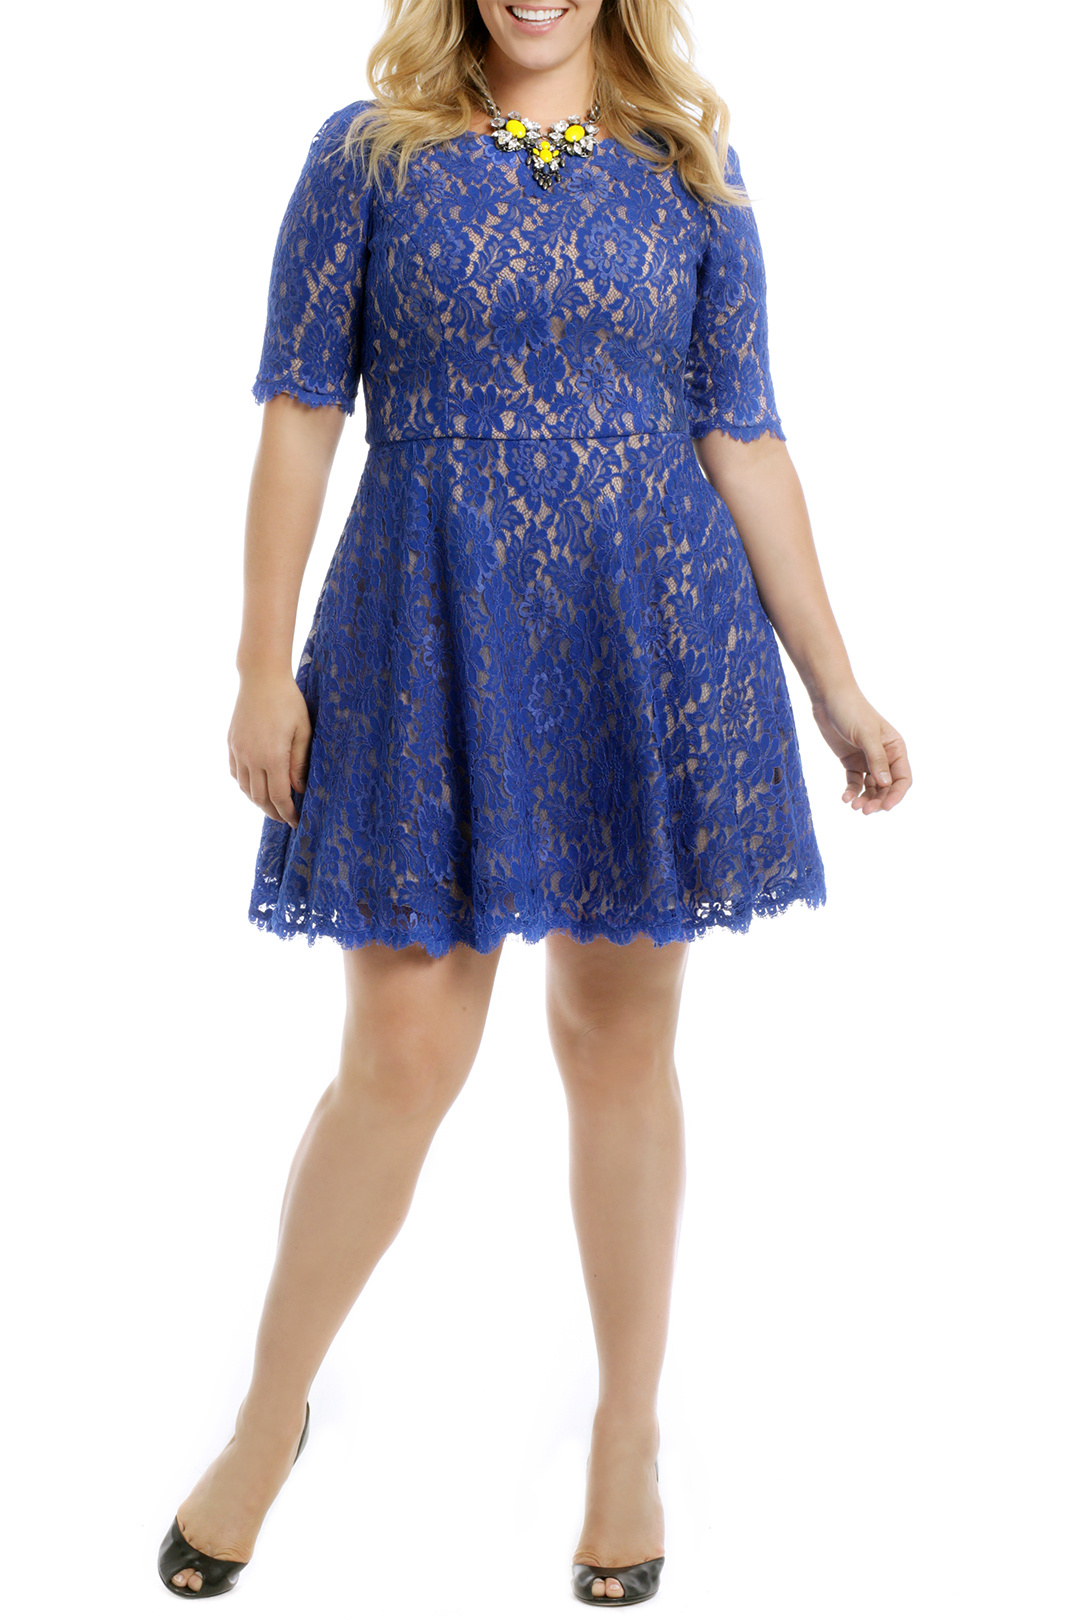 Alice Dress, ML by Monique Lhuillier , $40 for a 4-day rental at Rent the Runway